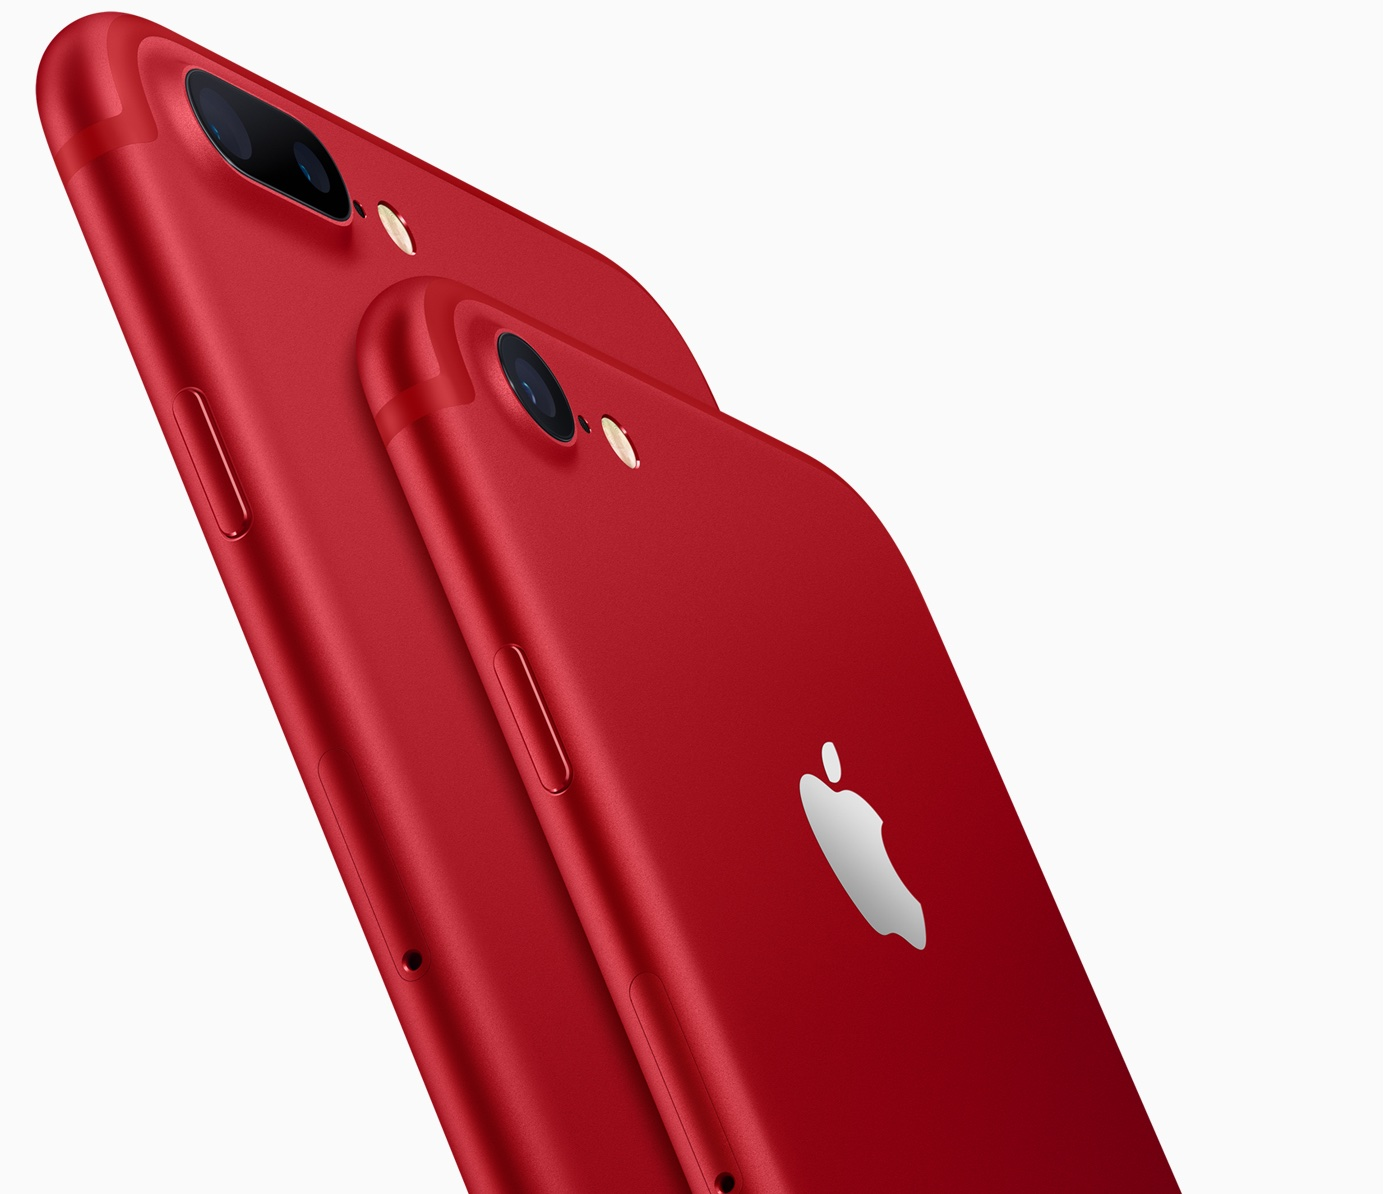 competitive price 946fe dfd68 Apple's no longer providing free speaker repair to iPhone 7 users